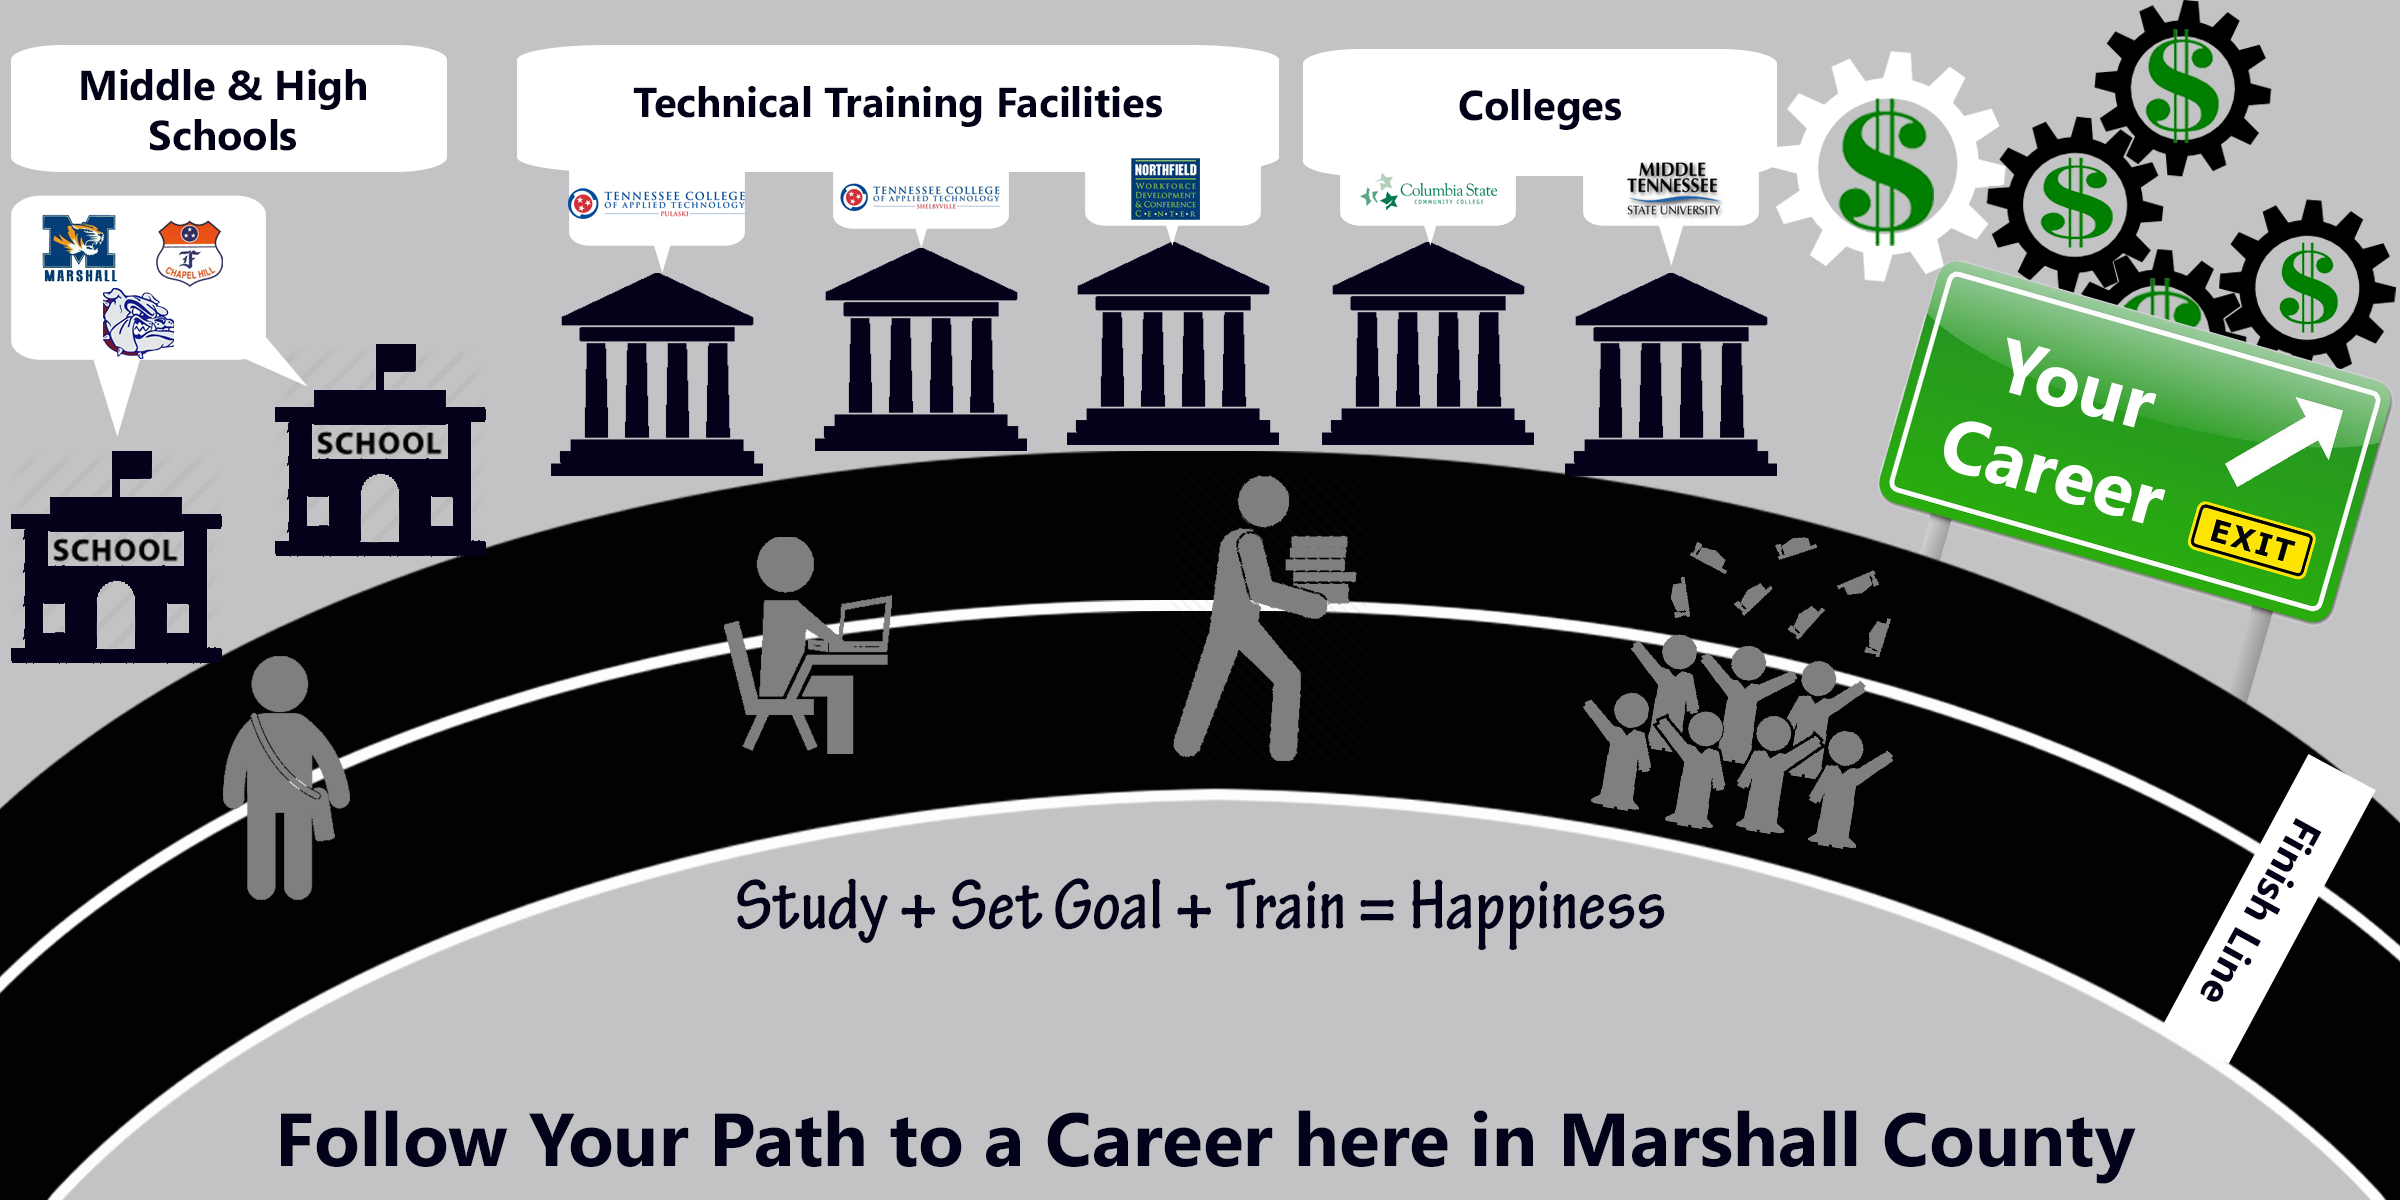 Road Map to Career